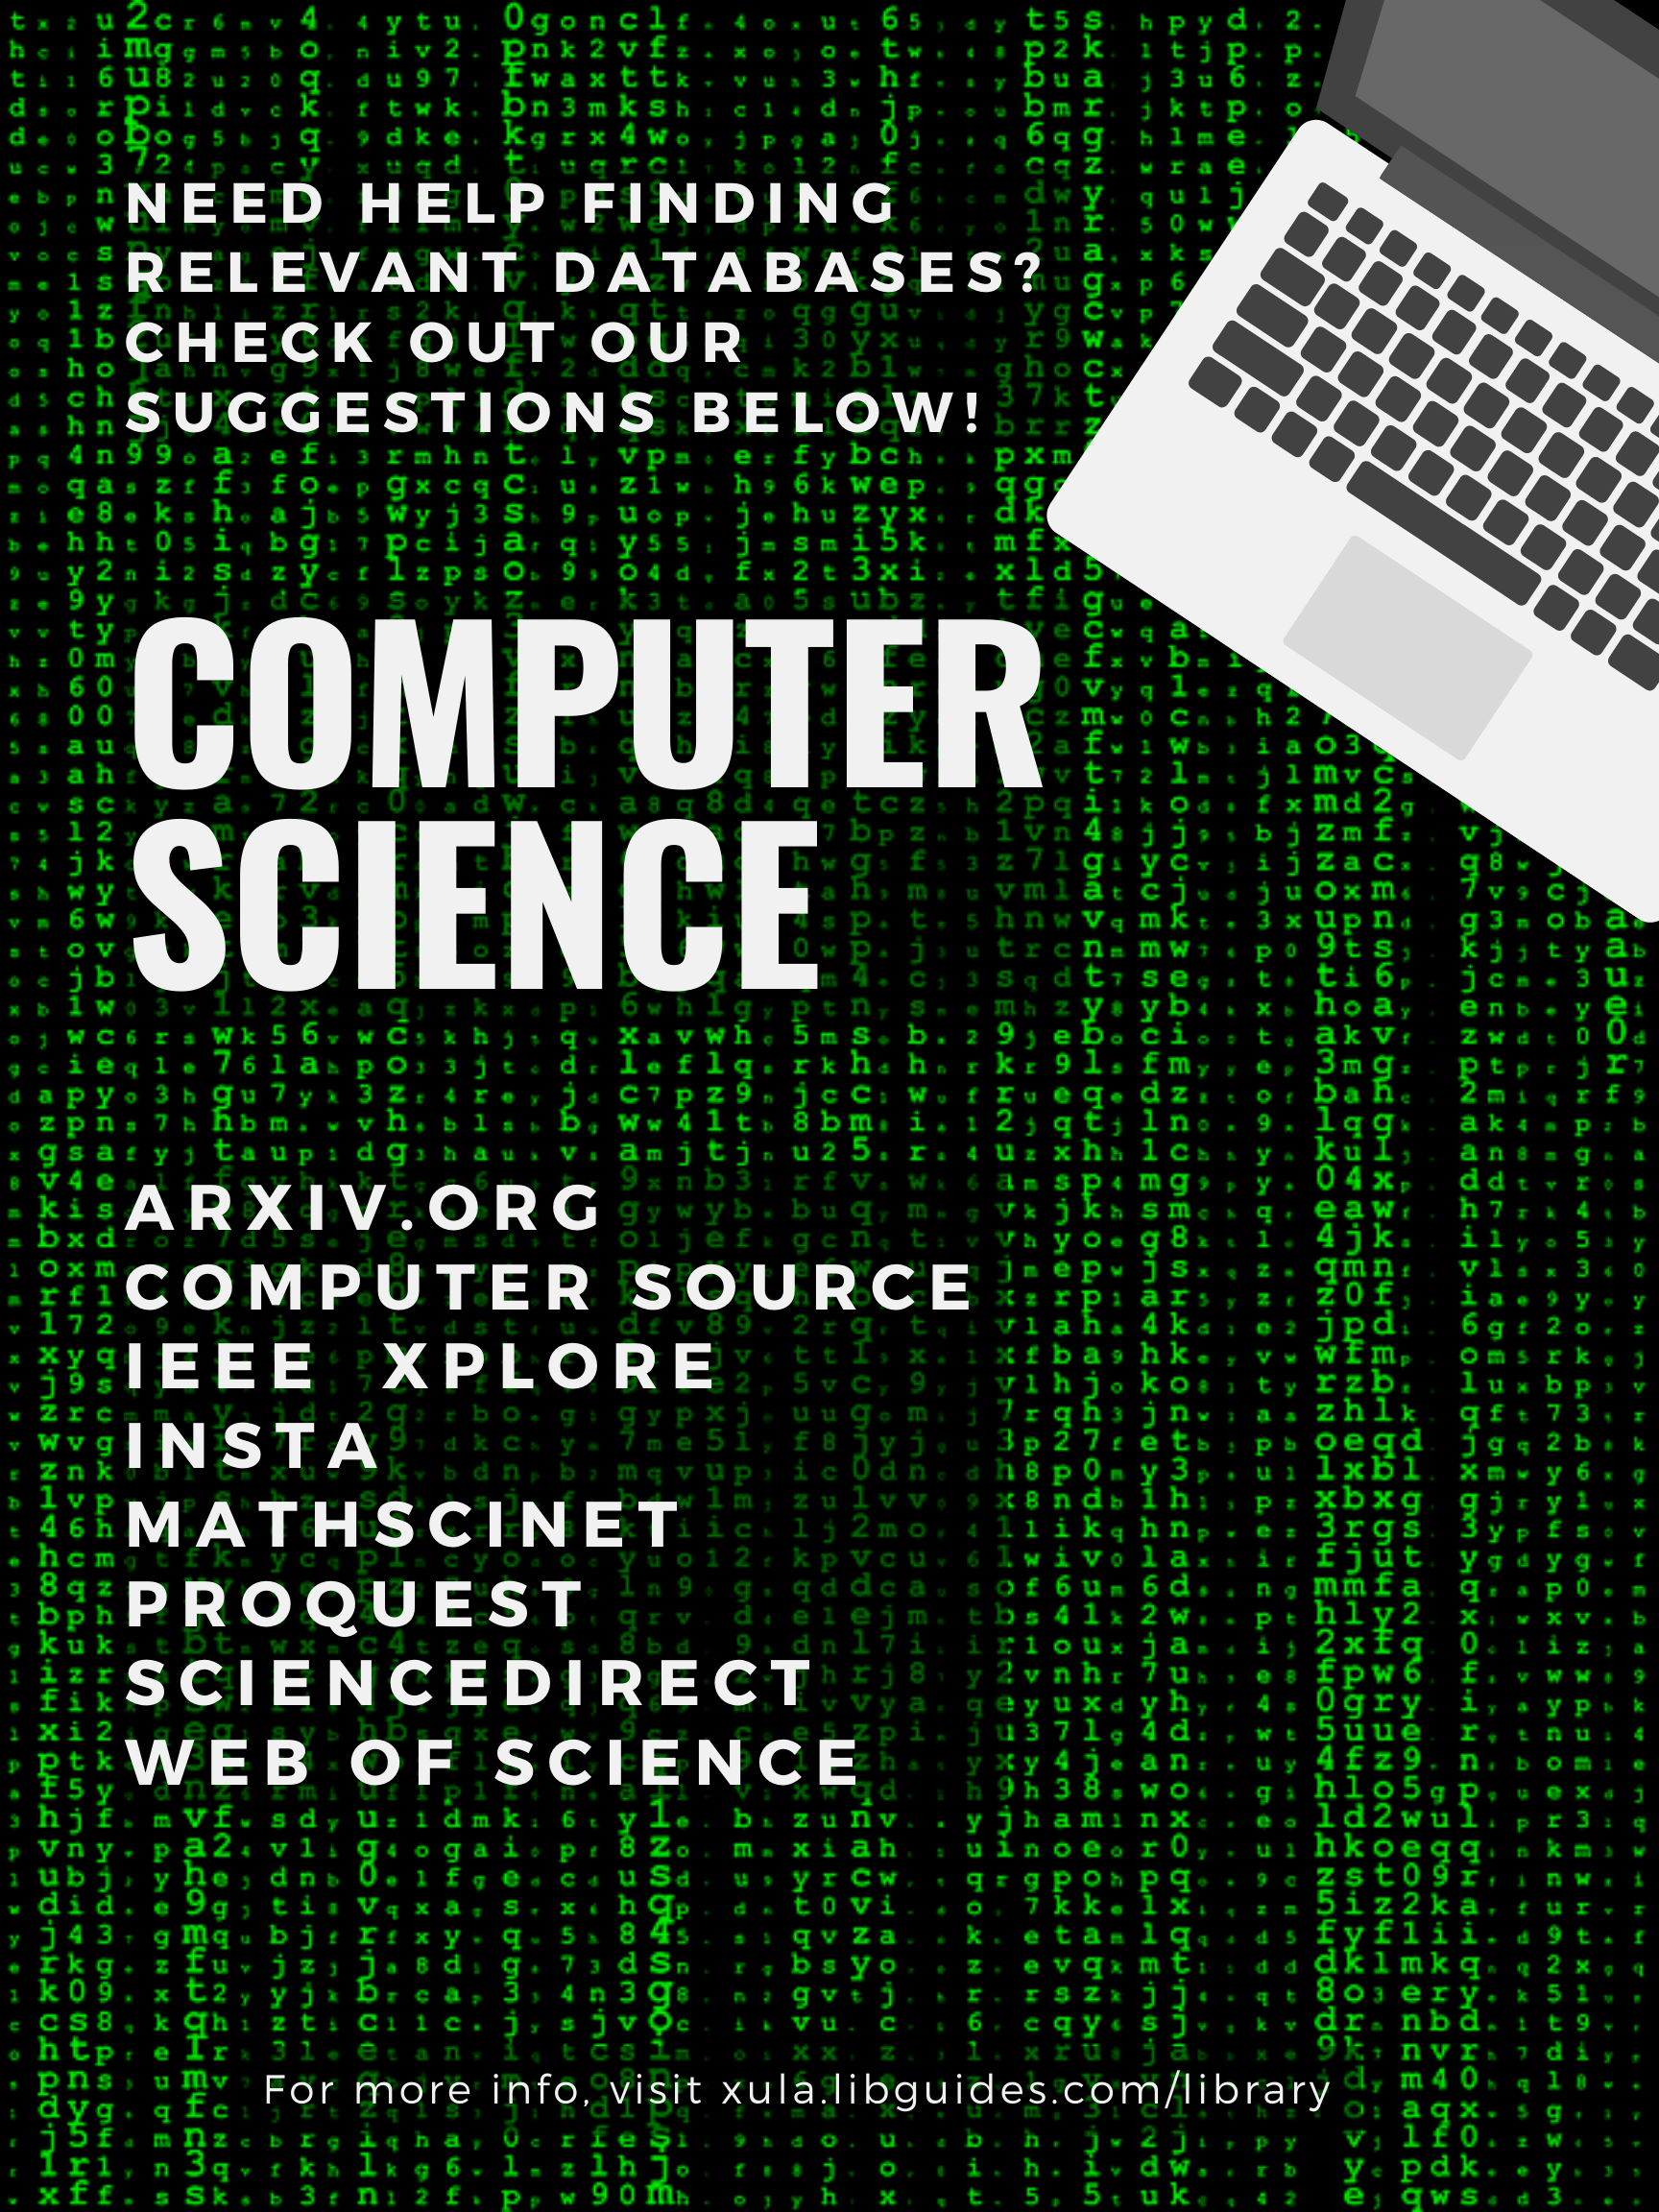 Computer Science Databases